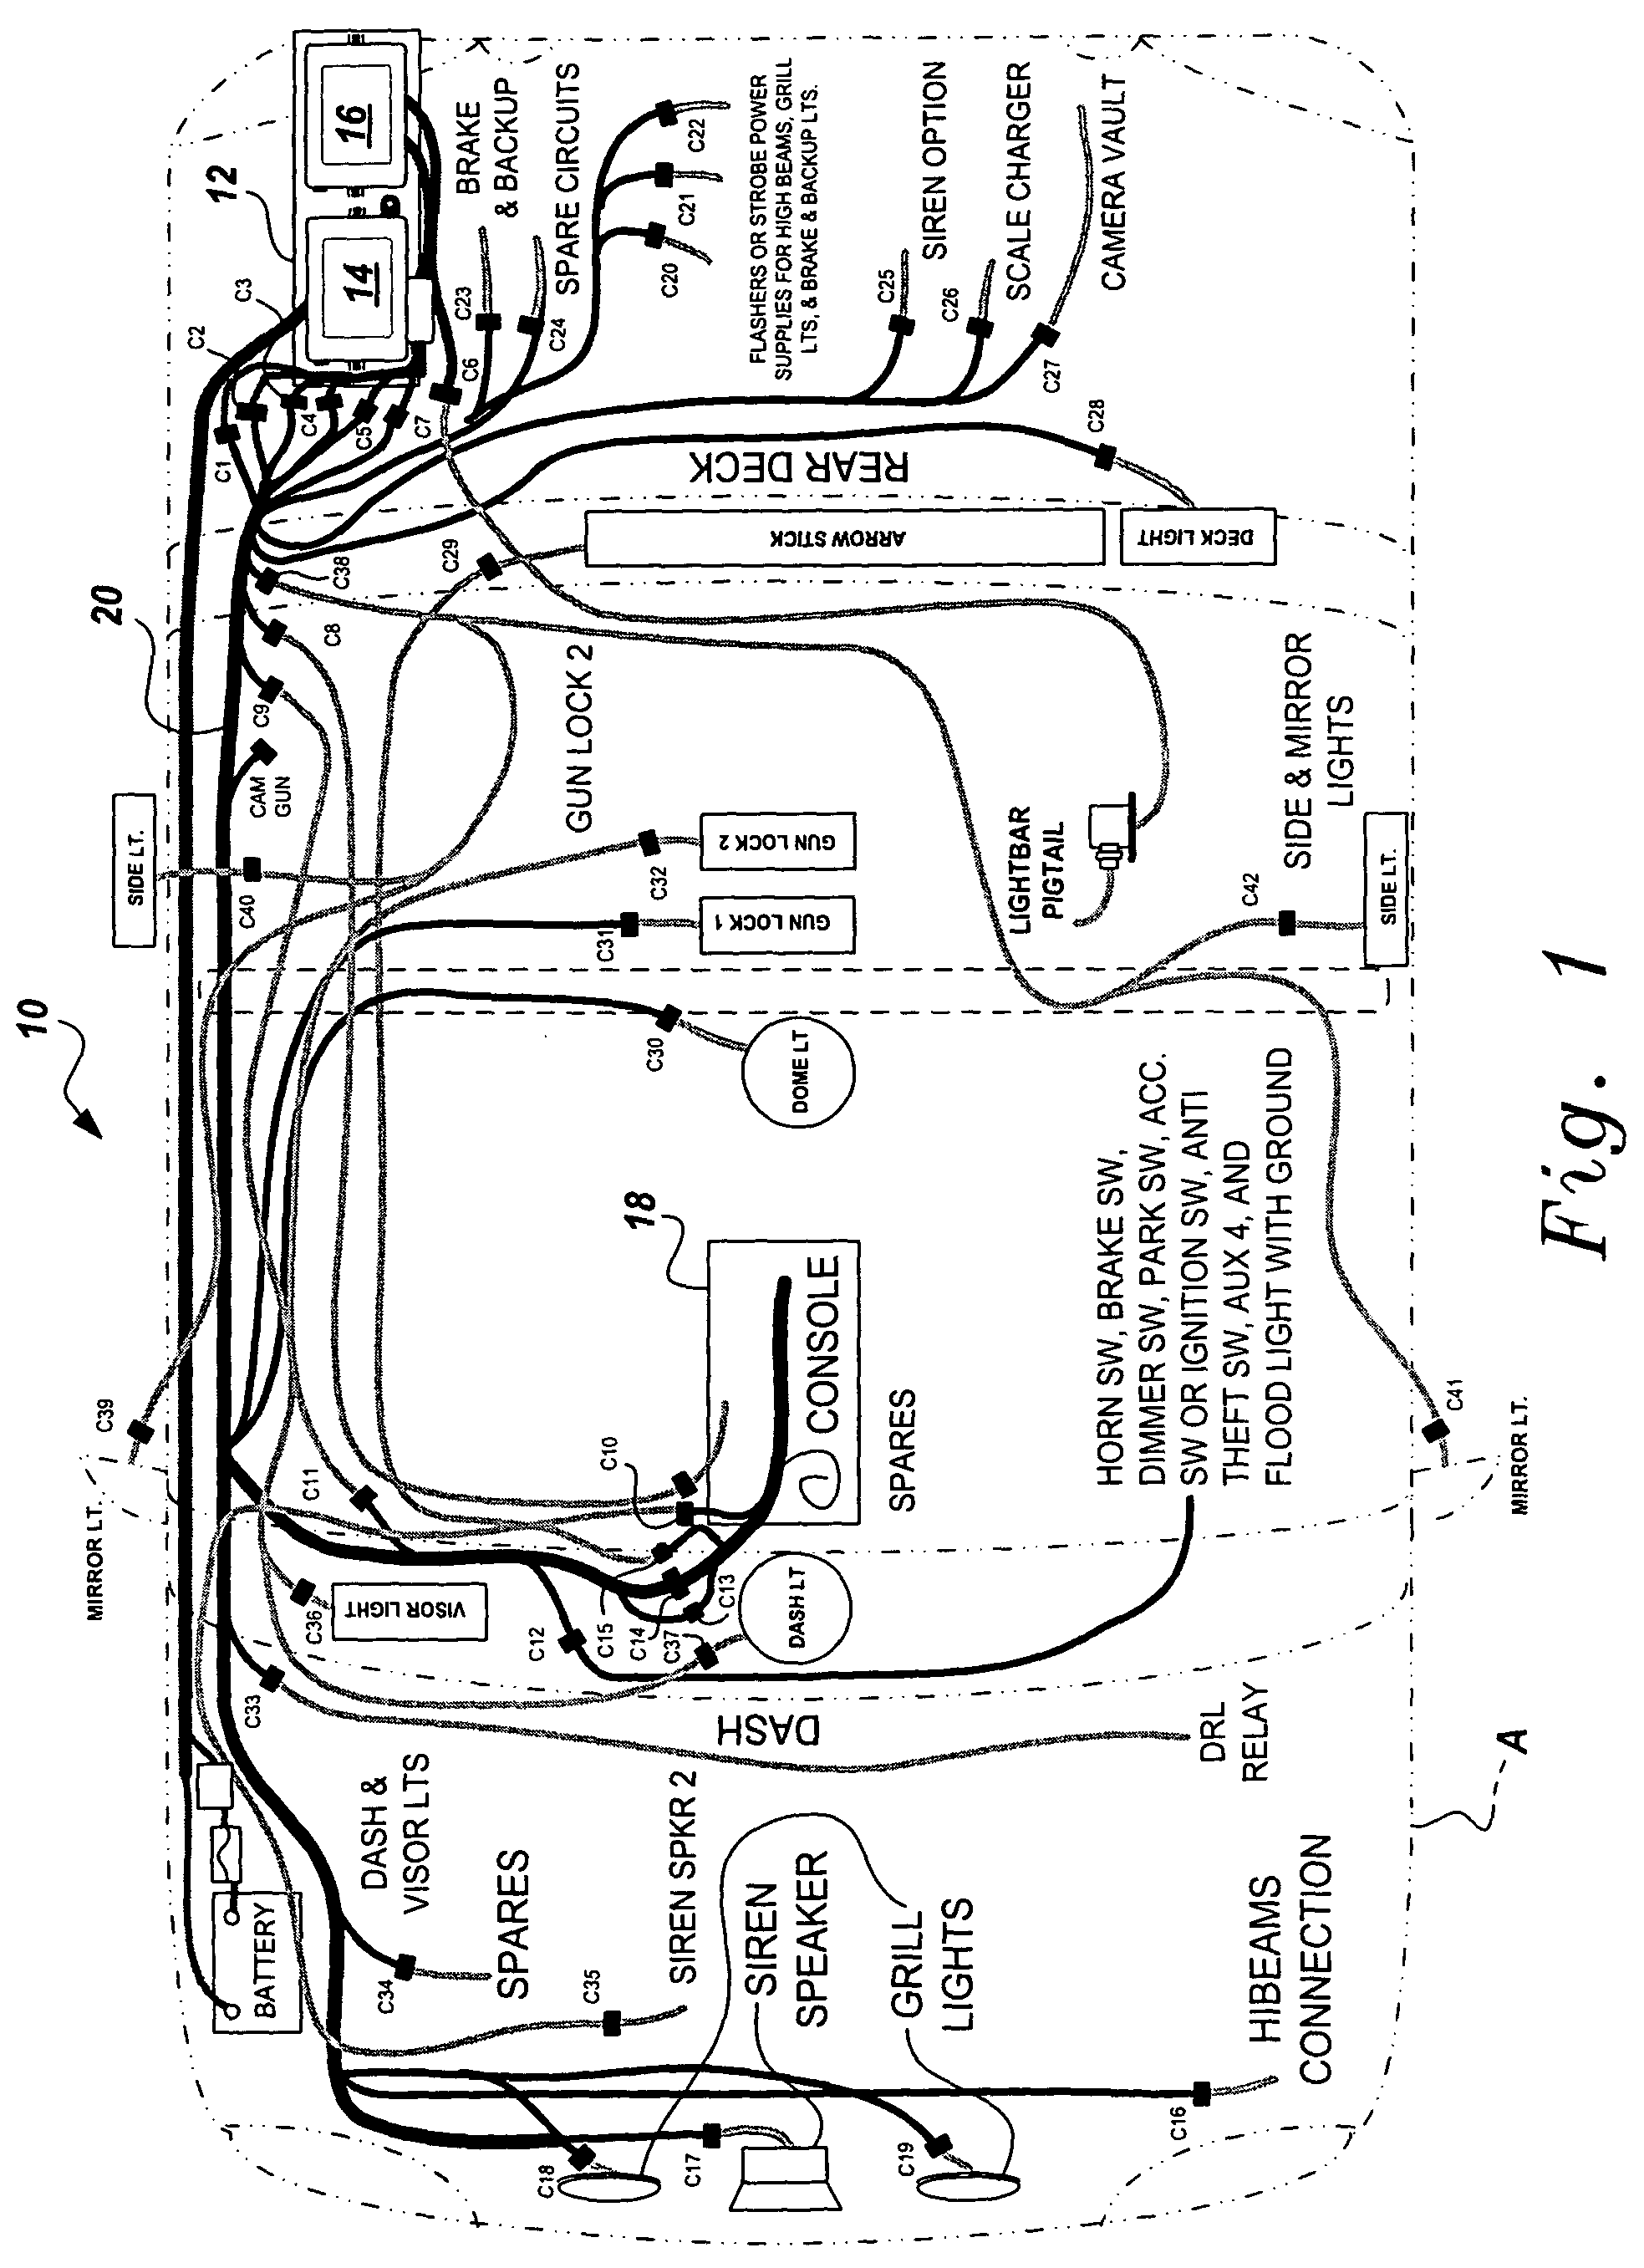 US07342325 20080311 D00001?resize\=665%2C917\&ssl\=1 cat c15 wiring diagram cat c7 belt diagram, cat c15 fuel system c15 wiring diagram at bakdesigns.co